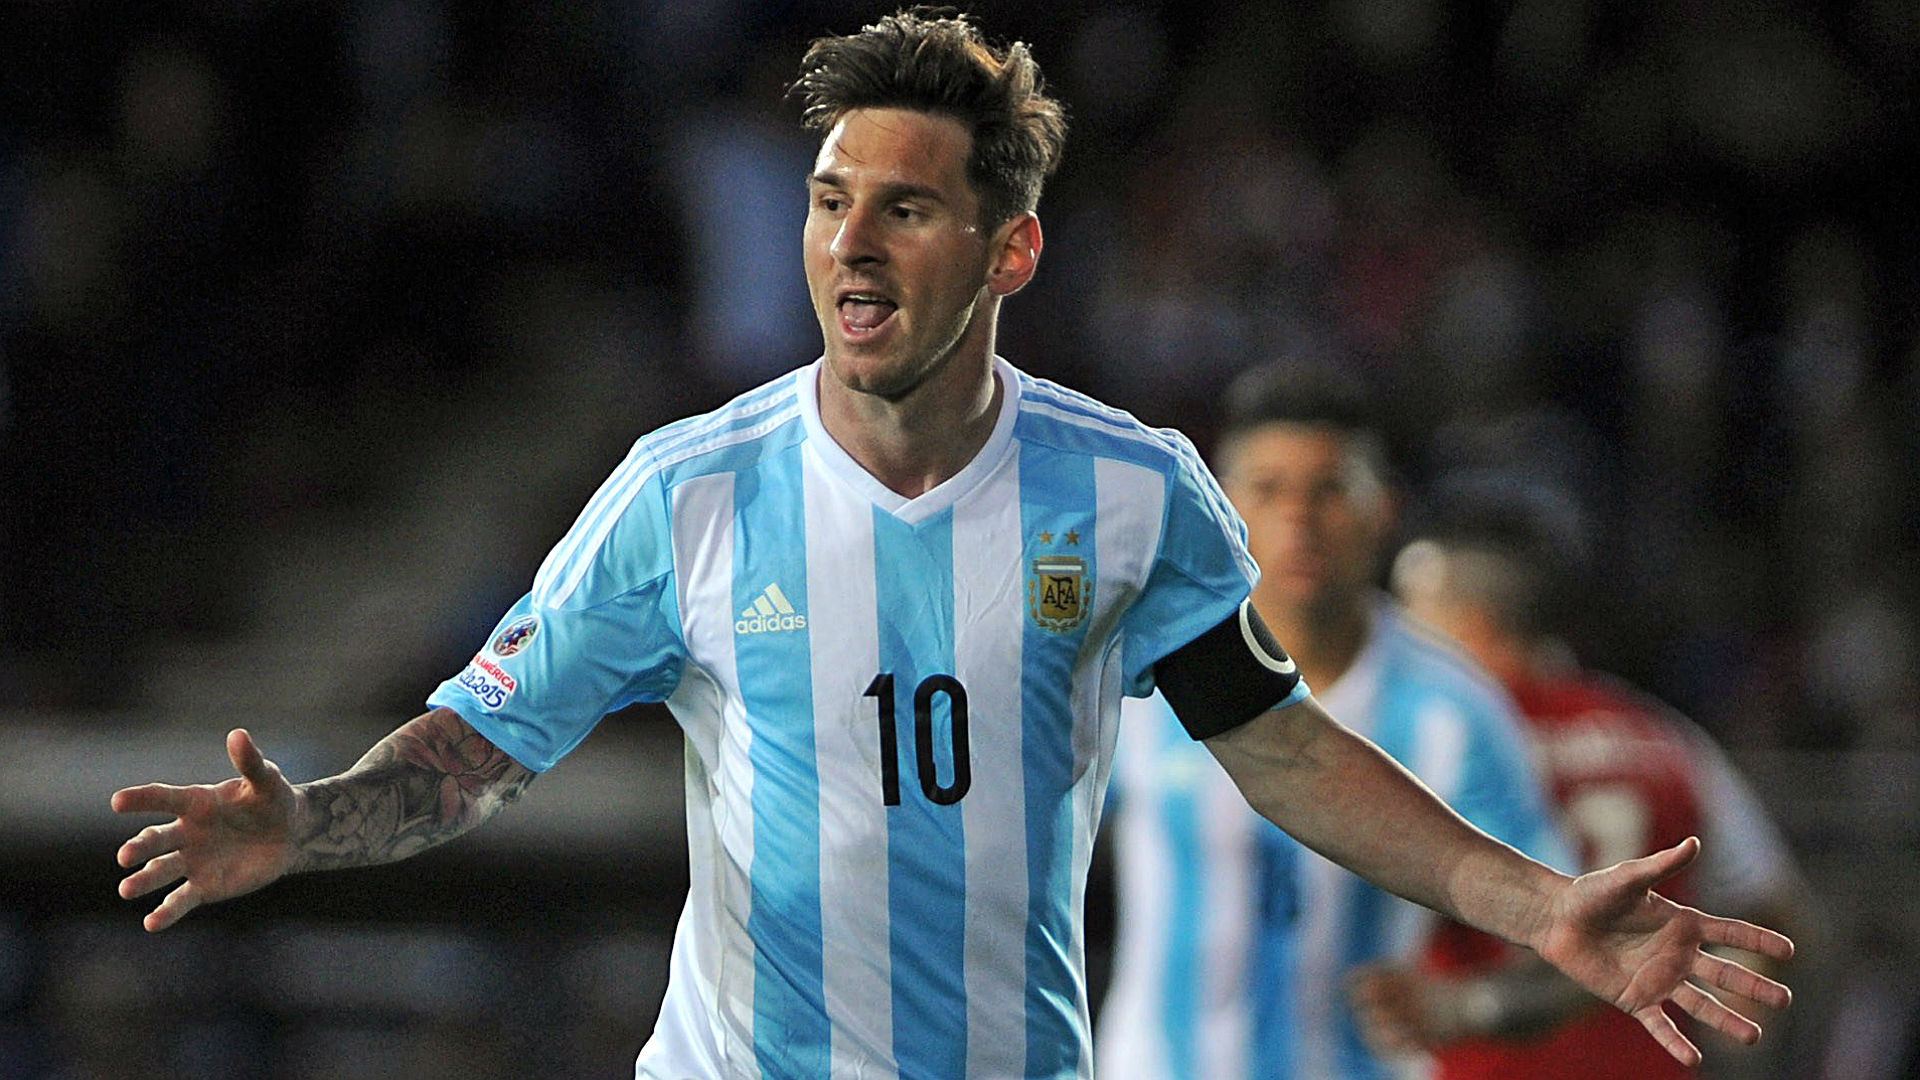 Chile vs. Argentina odds and pick – Handicapping the Copa America final